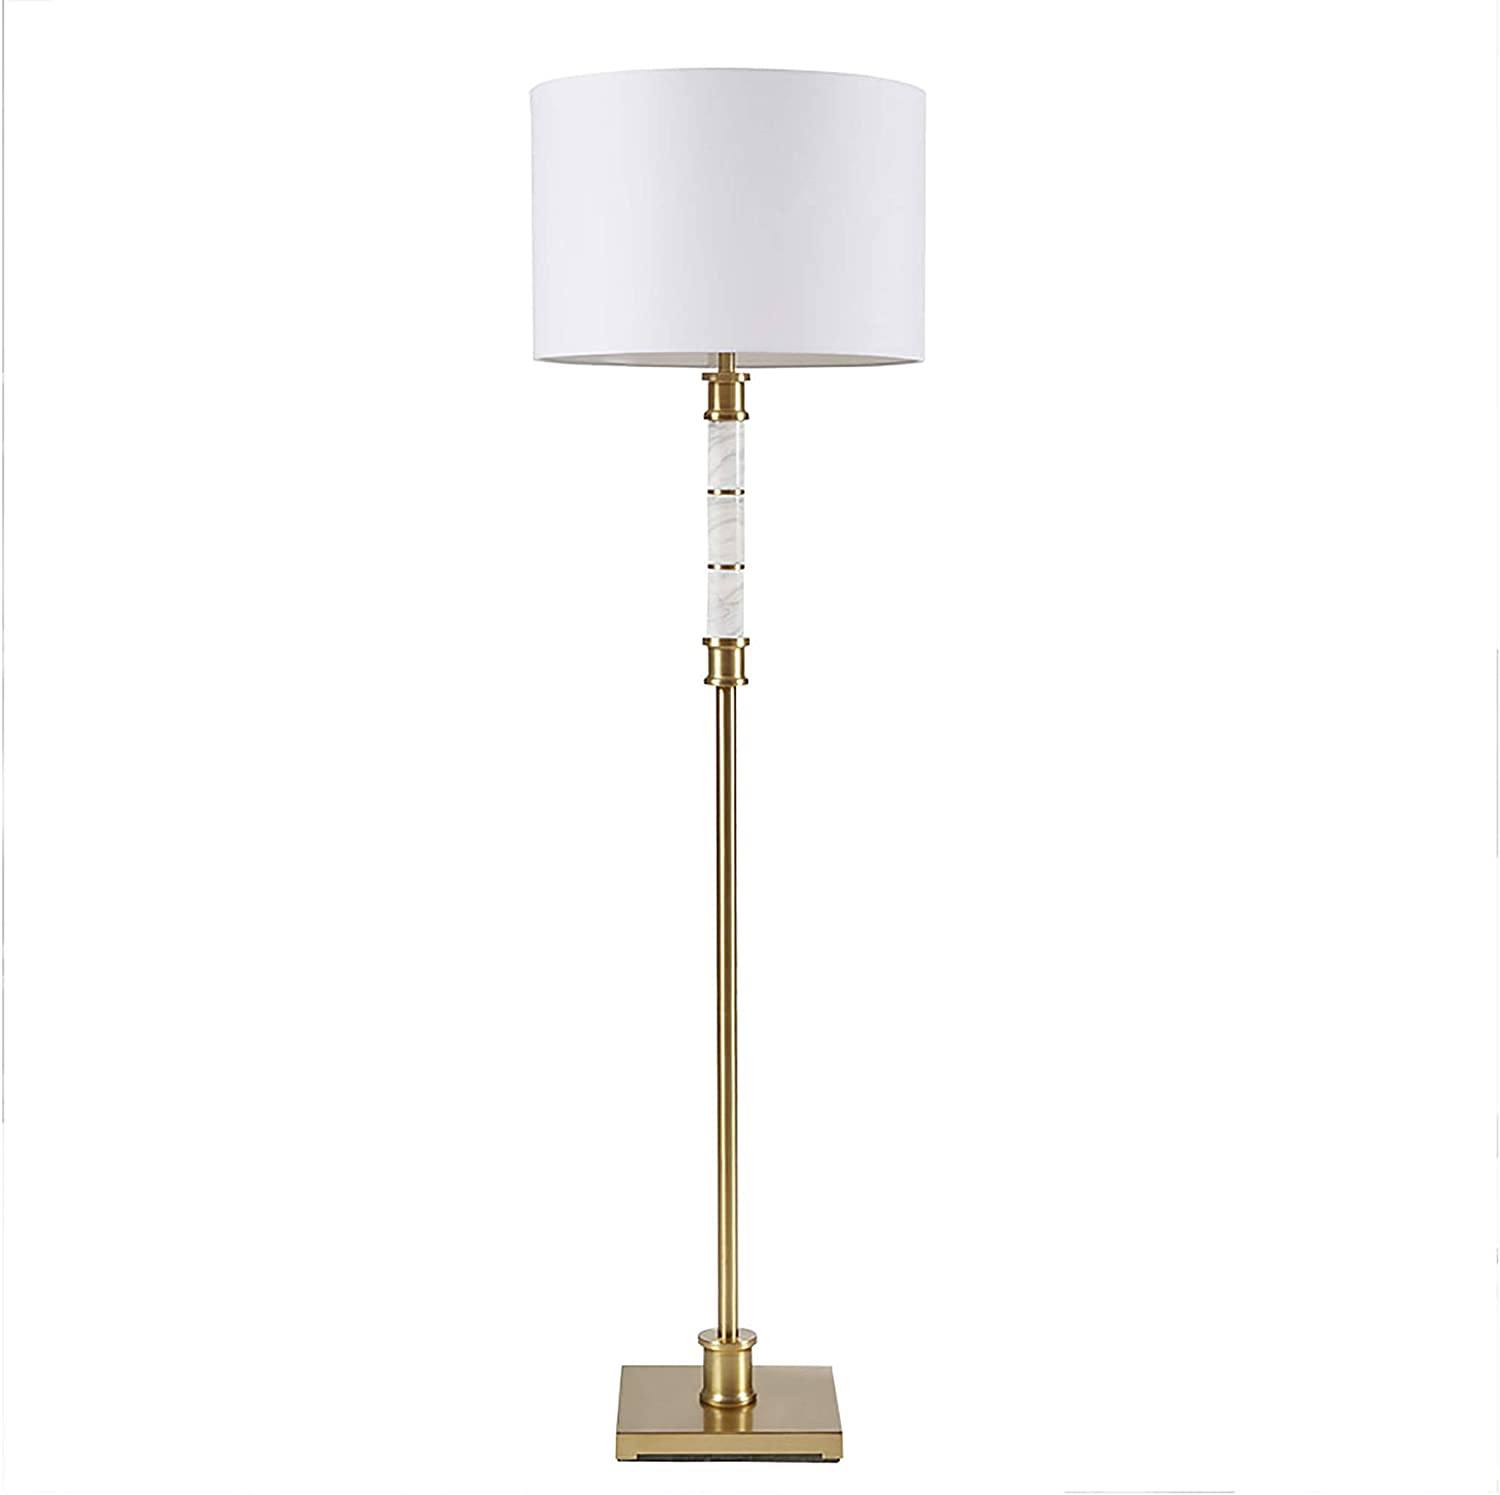 """Madison Park Signature MPS154-0069 Adeline Floor Lamp - Modern Luxe Accent Furniture Décor Lighting for Living Room Metal Post, Marble Detail Uplight, Fabric Shade, 62.5"""" Tall, White/Gold"""